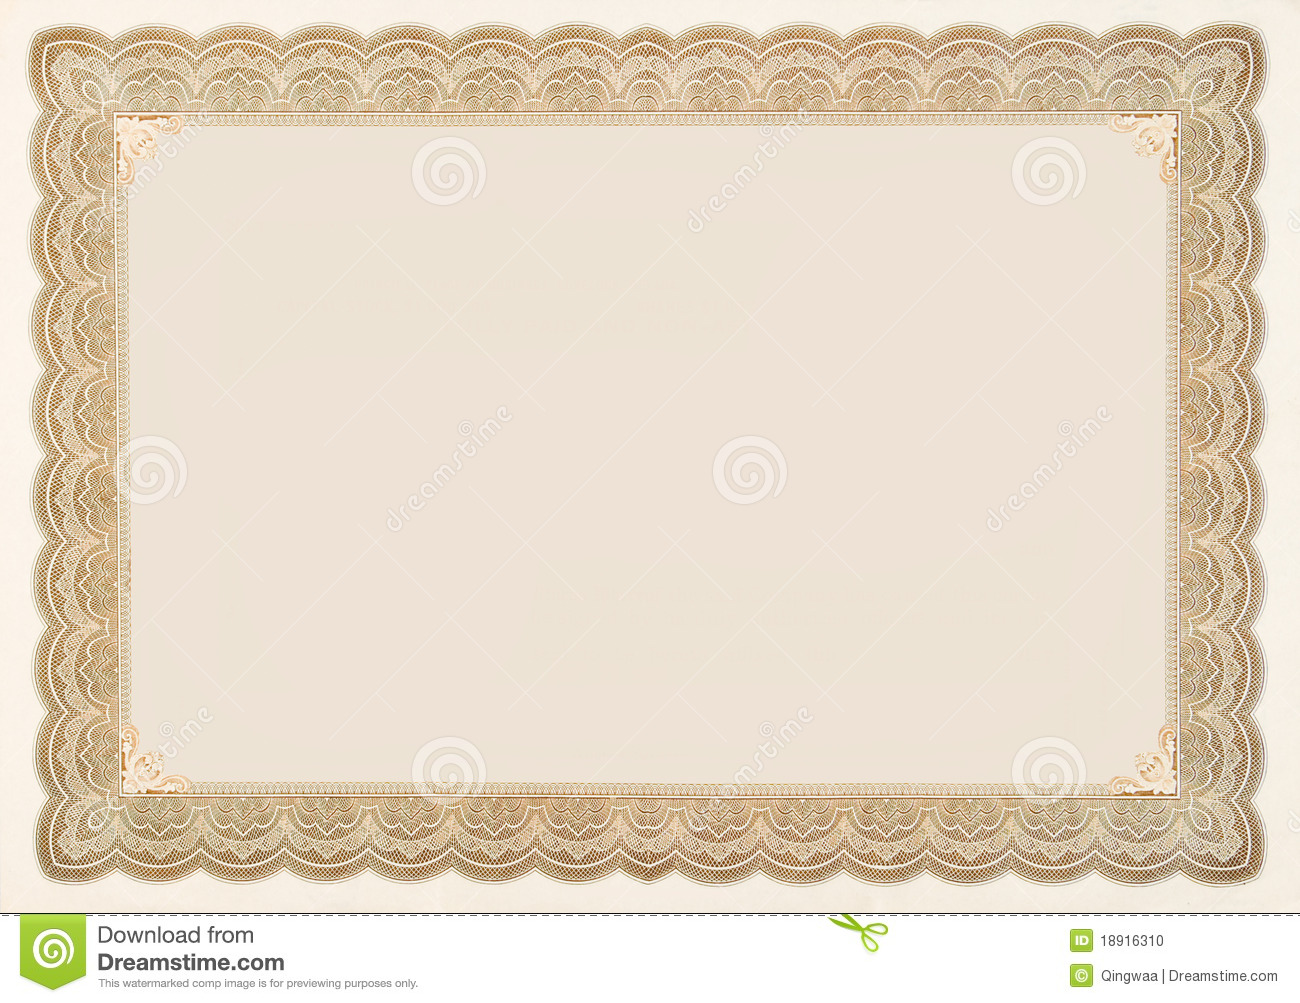 Old Vintage Stock Certificate Empty Boarder Stock Photo ...